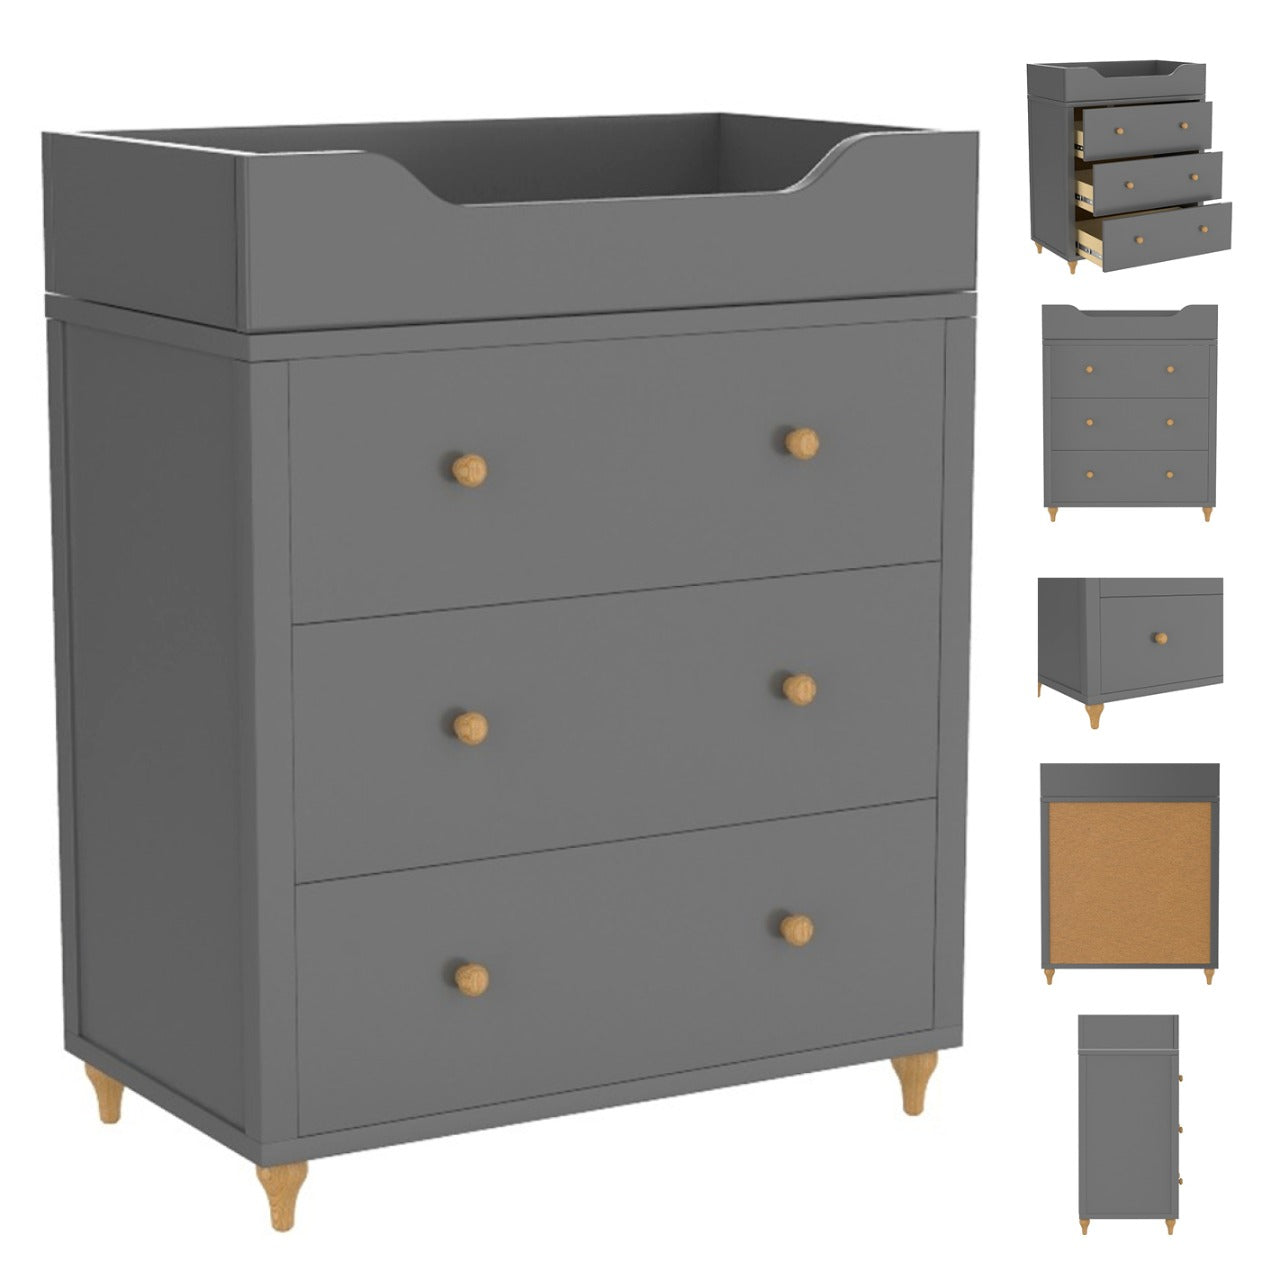 bebelelo changing table Dark gray